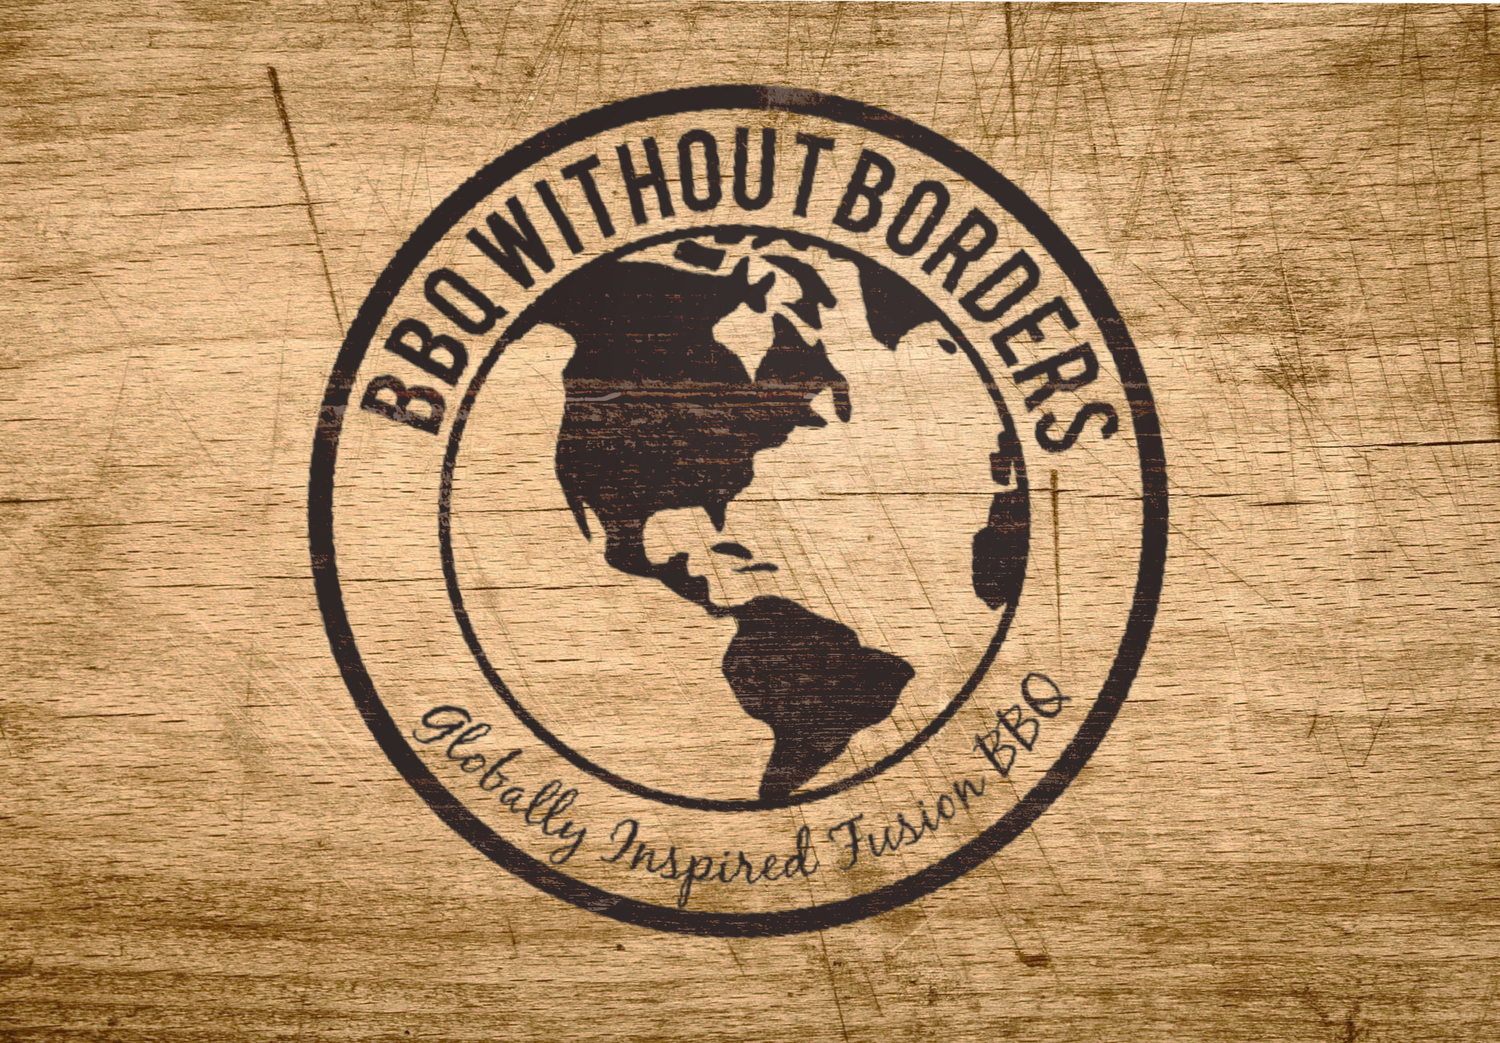 BBQ without Borders